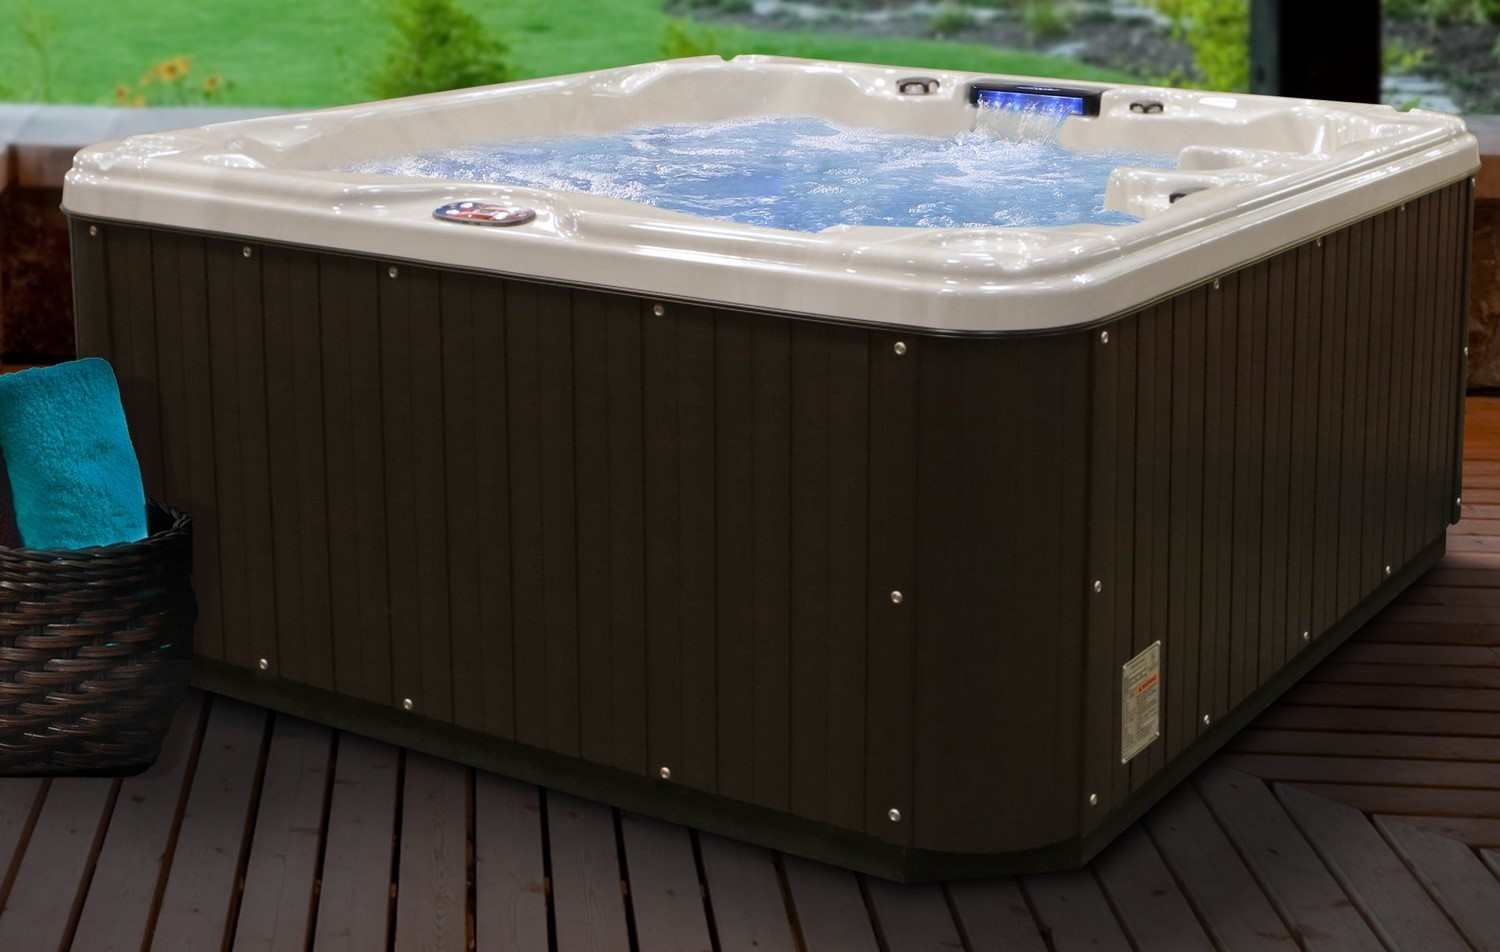 American Spas AM 630LS 5 Person 30 Jet Lounger Spa With Backlit LED